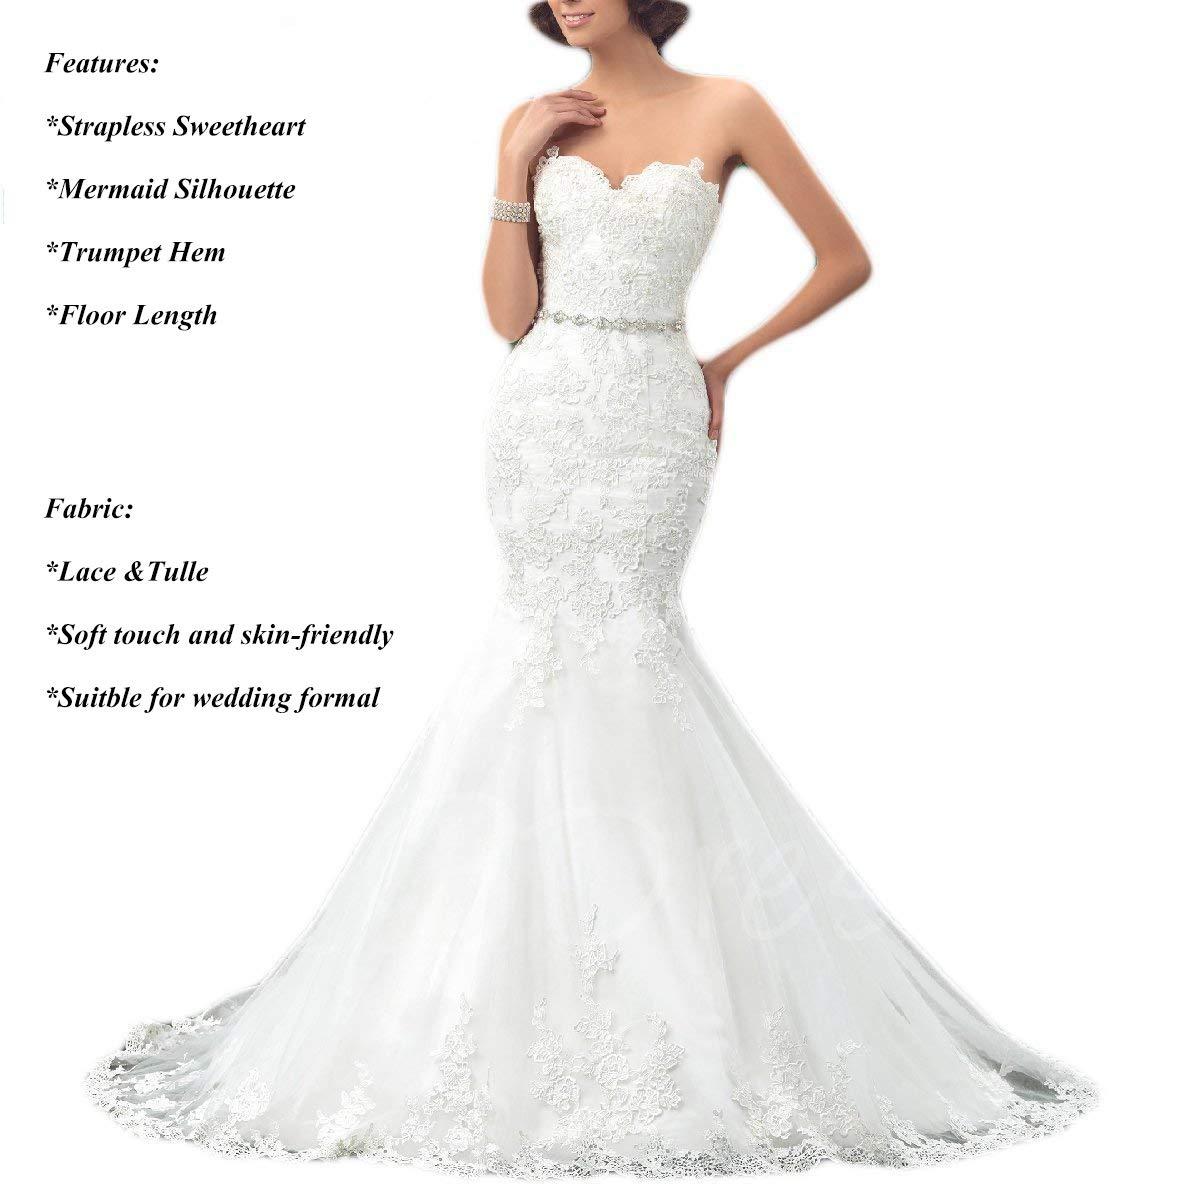 cea9342ca6c OYISHA Womens Formal Strapless Sweetheart Mermaid Wedding Dress Lace Bridal  Dresses Long 2019 WD162 at Amazon Women s Clothing store